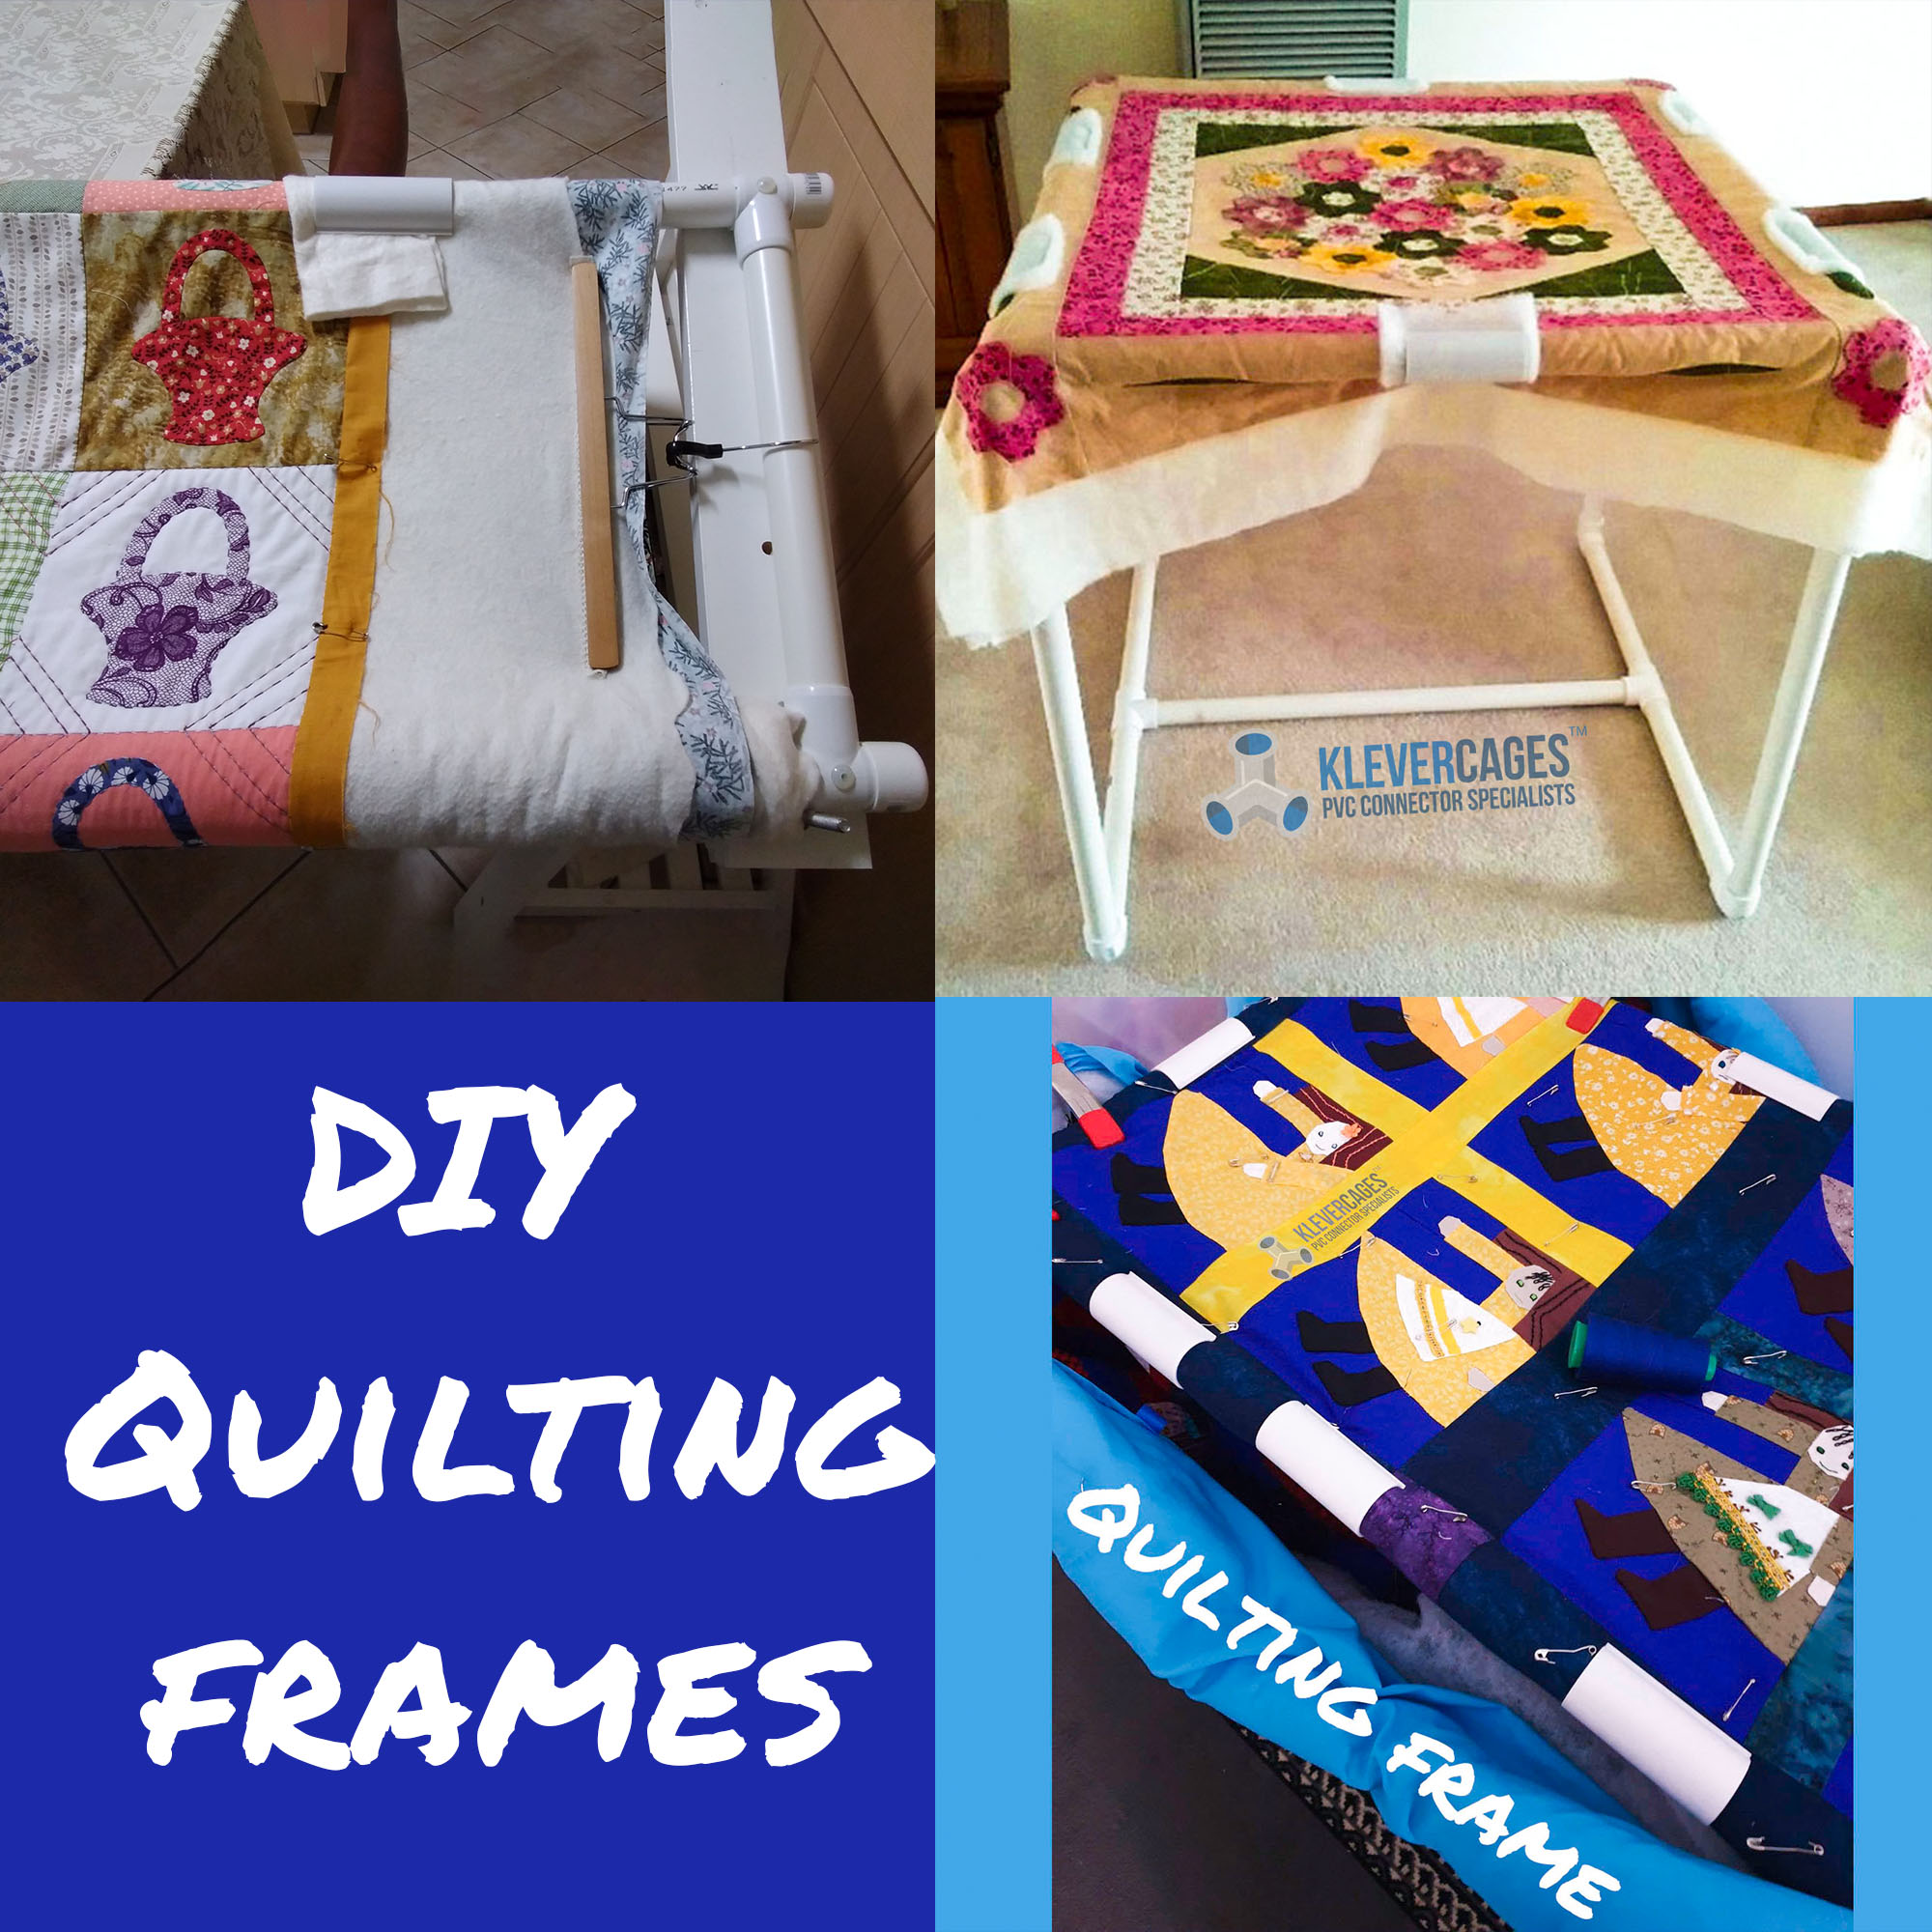 DIY quilting frames banner with pictures of quilting frames made with PVC pipe and connectors